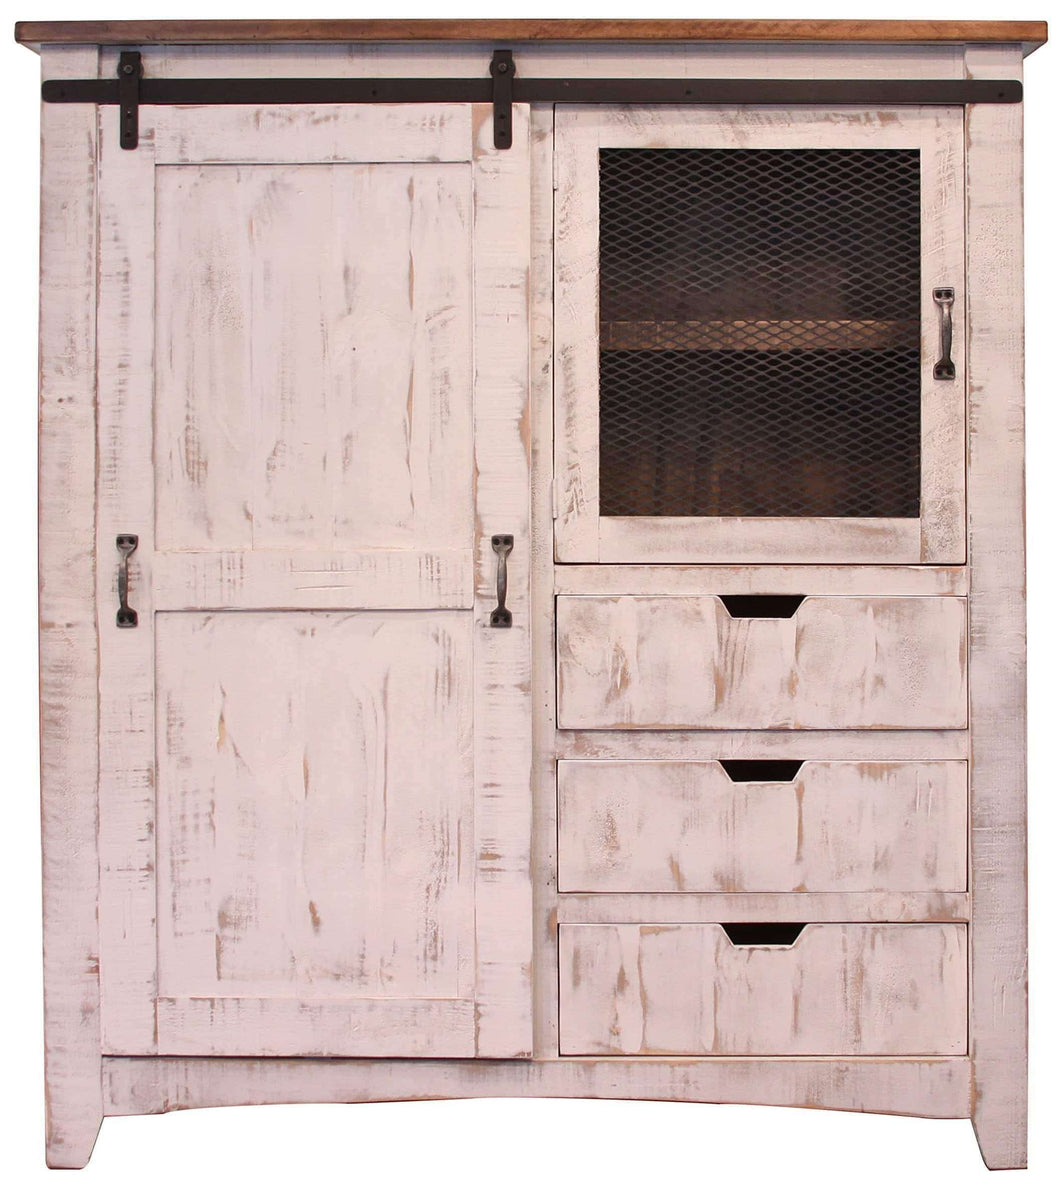 Heavy duty rr distressed white sturdy solid wood anton sliding barn door gentlemans chest armoire arrives fully assembled and features upgraded dovetail drawers with ball bearing glides